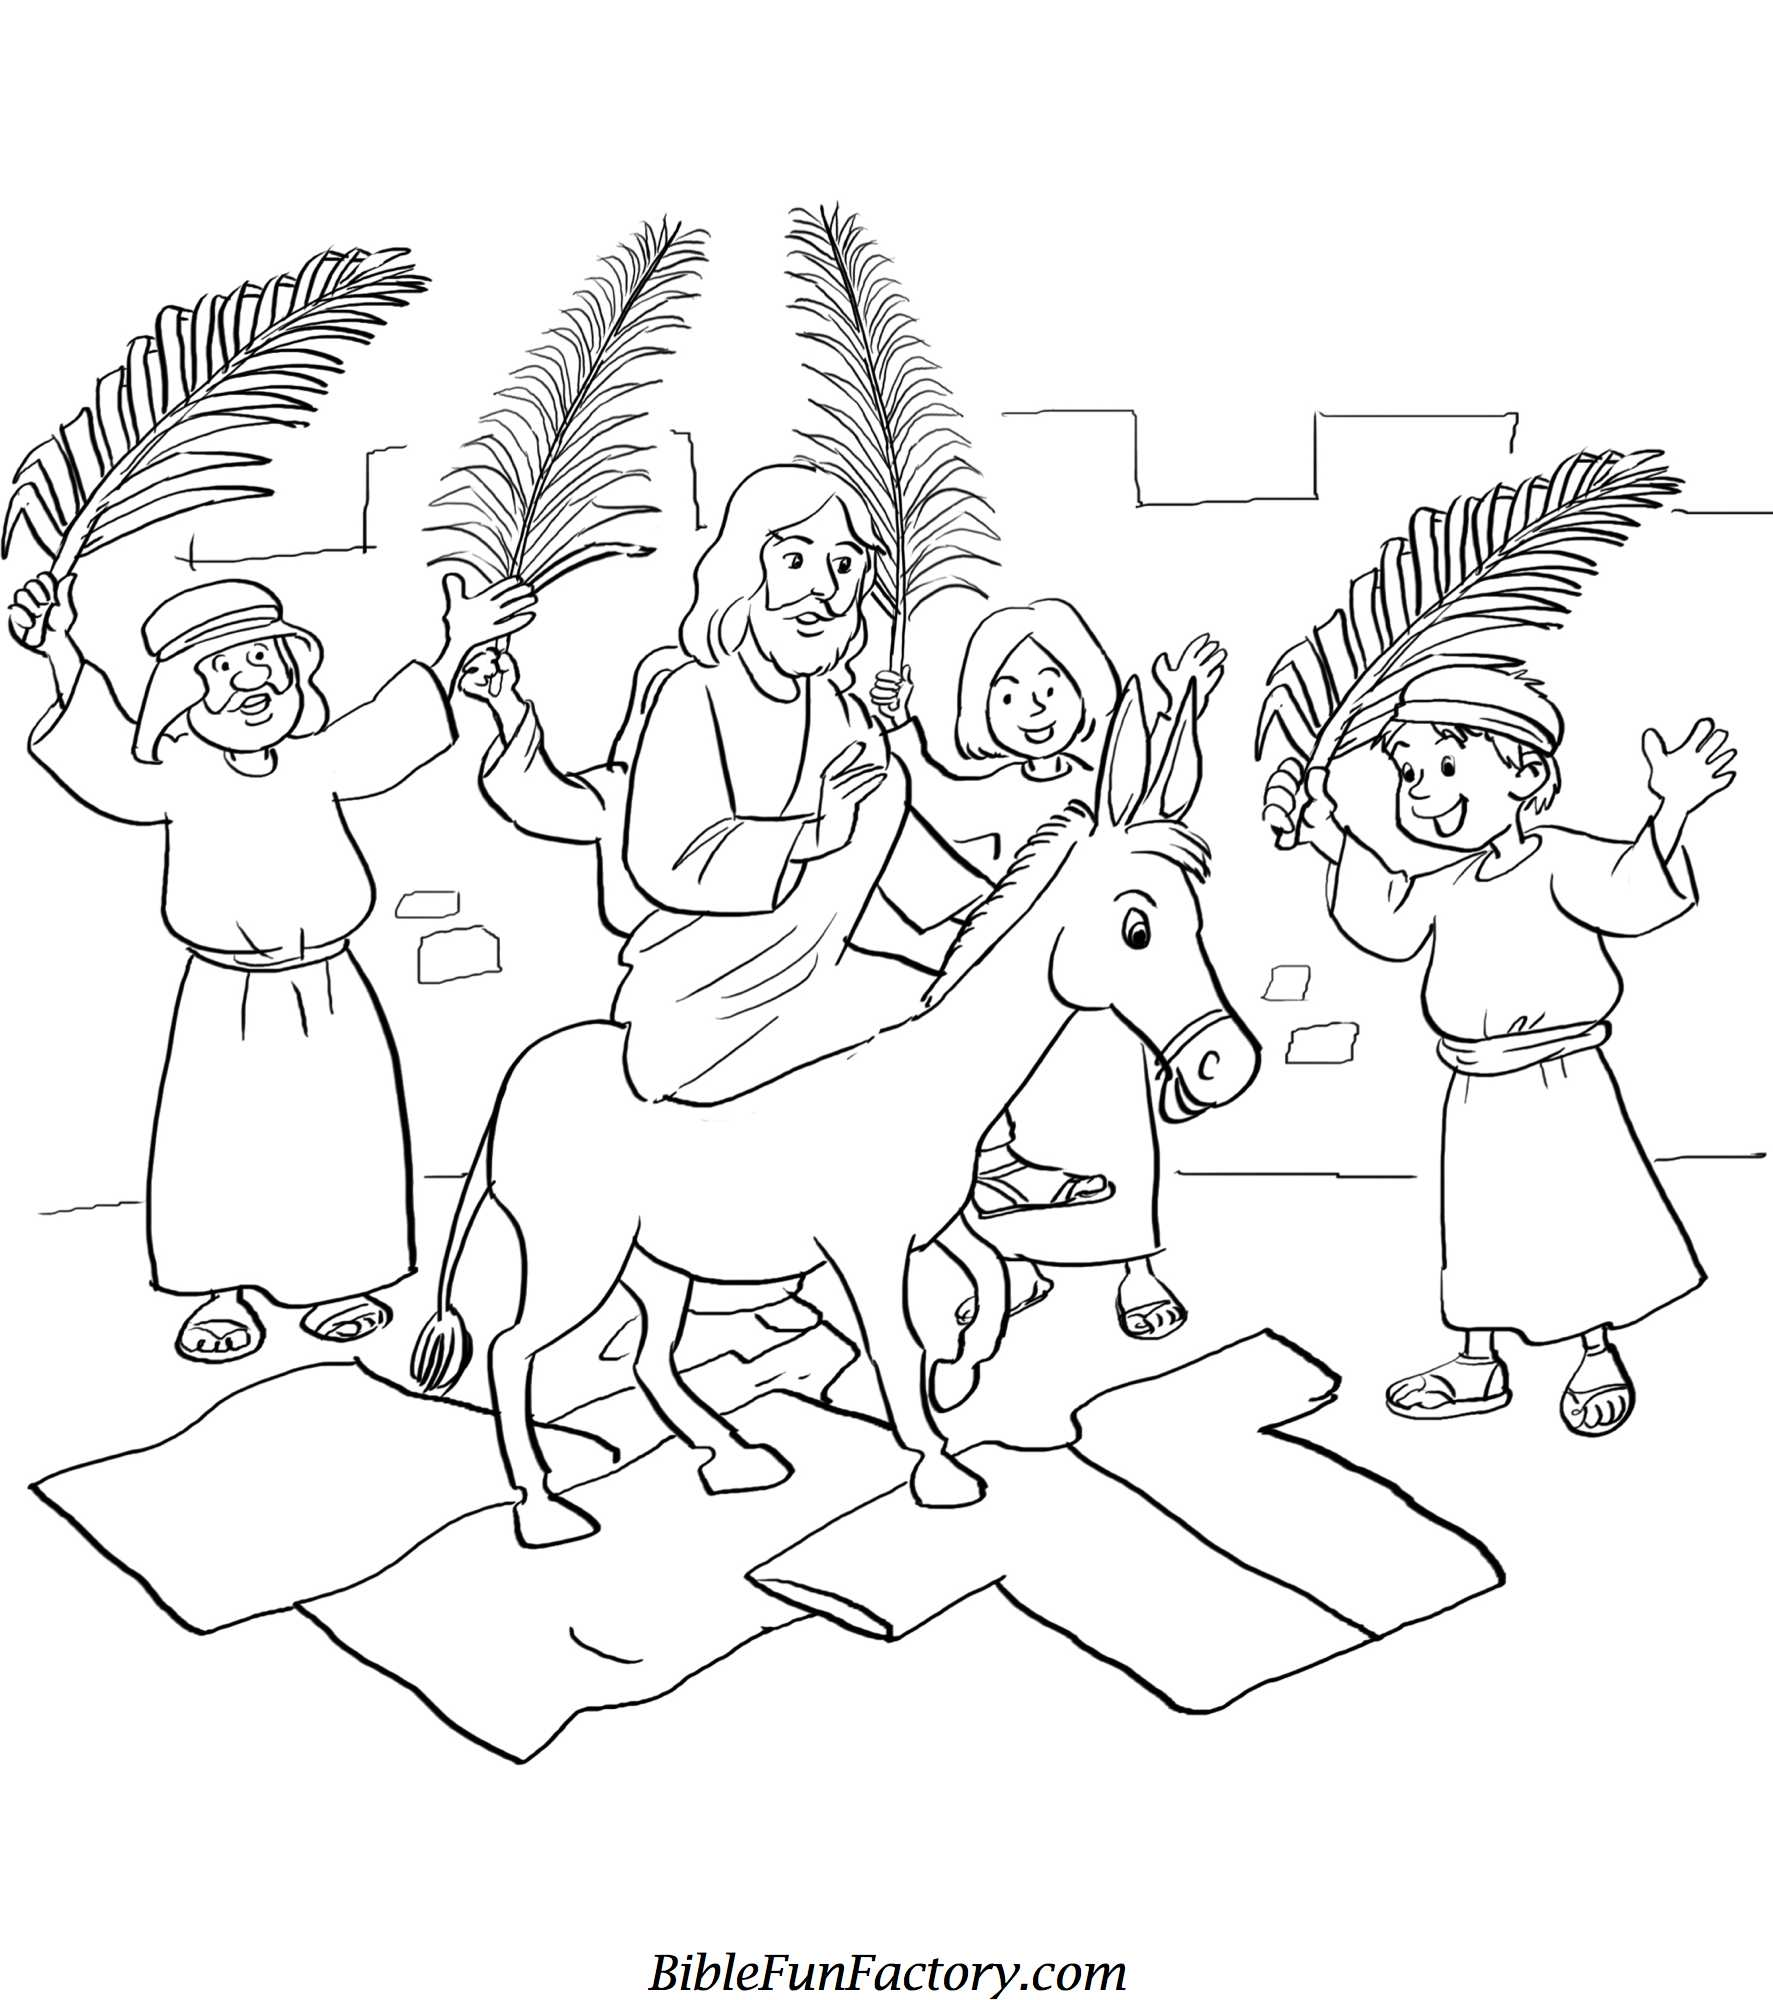 bible coloring pages for preschoolers 131 best miscellaneous coloring pages images on pinterest pages bible coloring for preschoolers